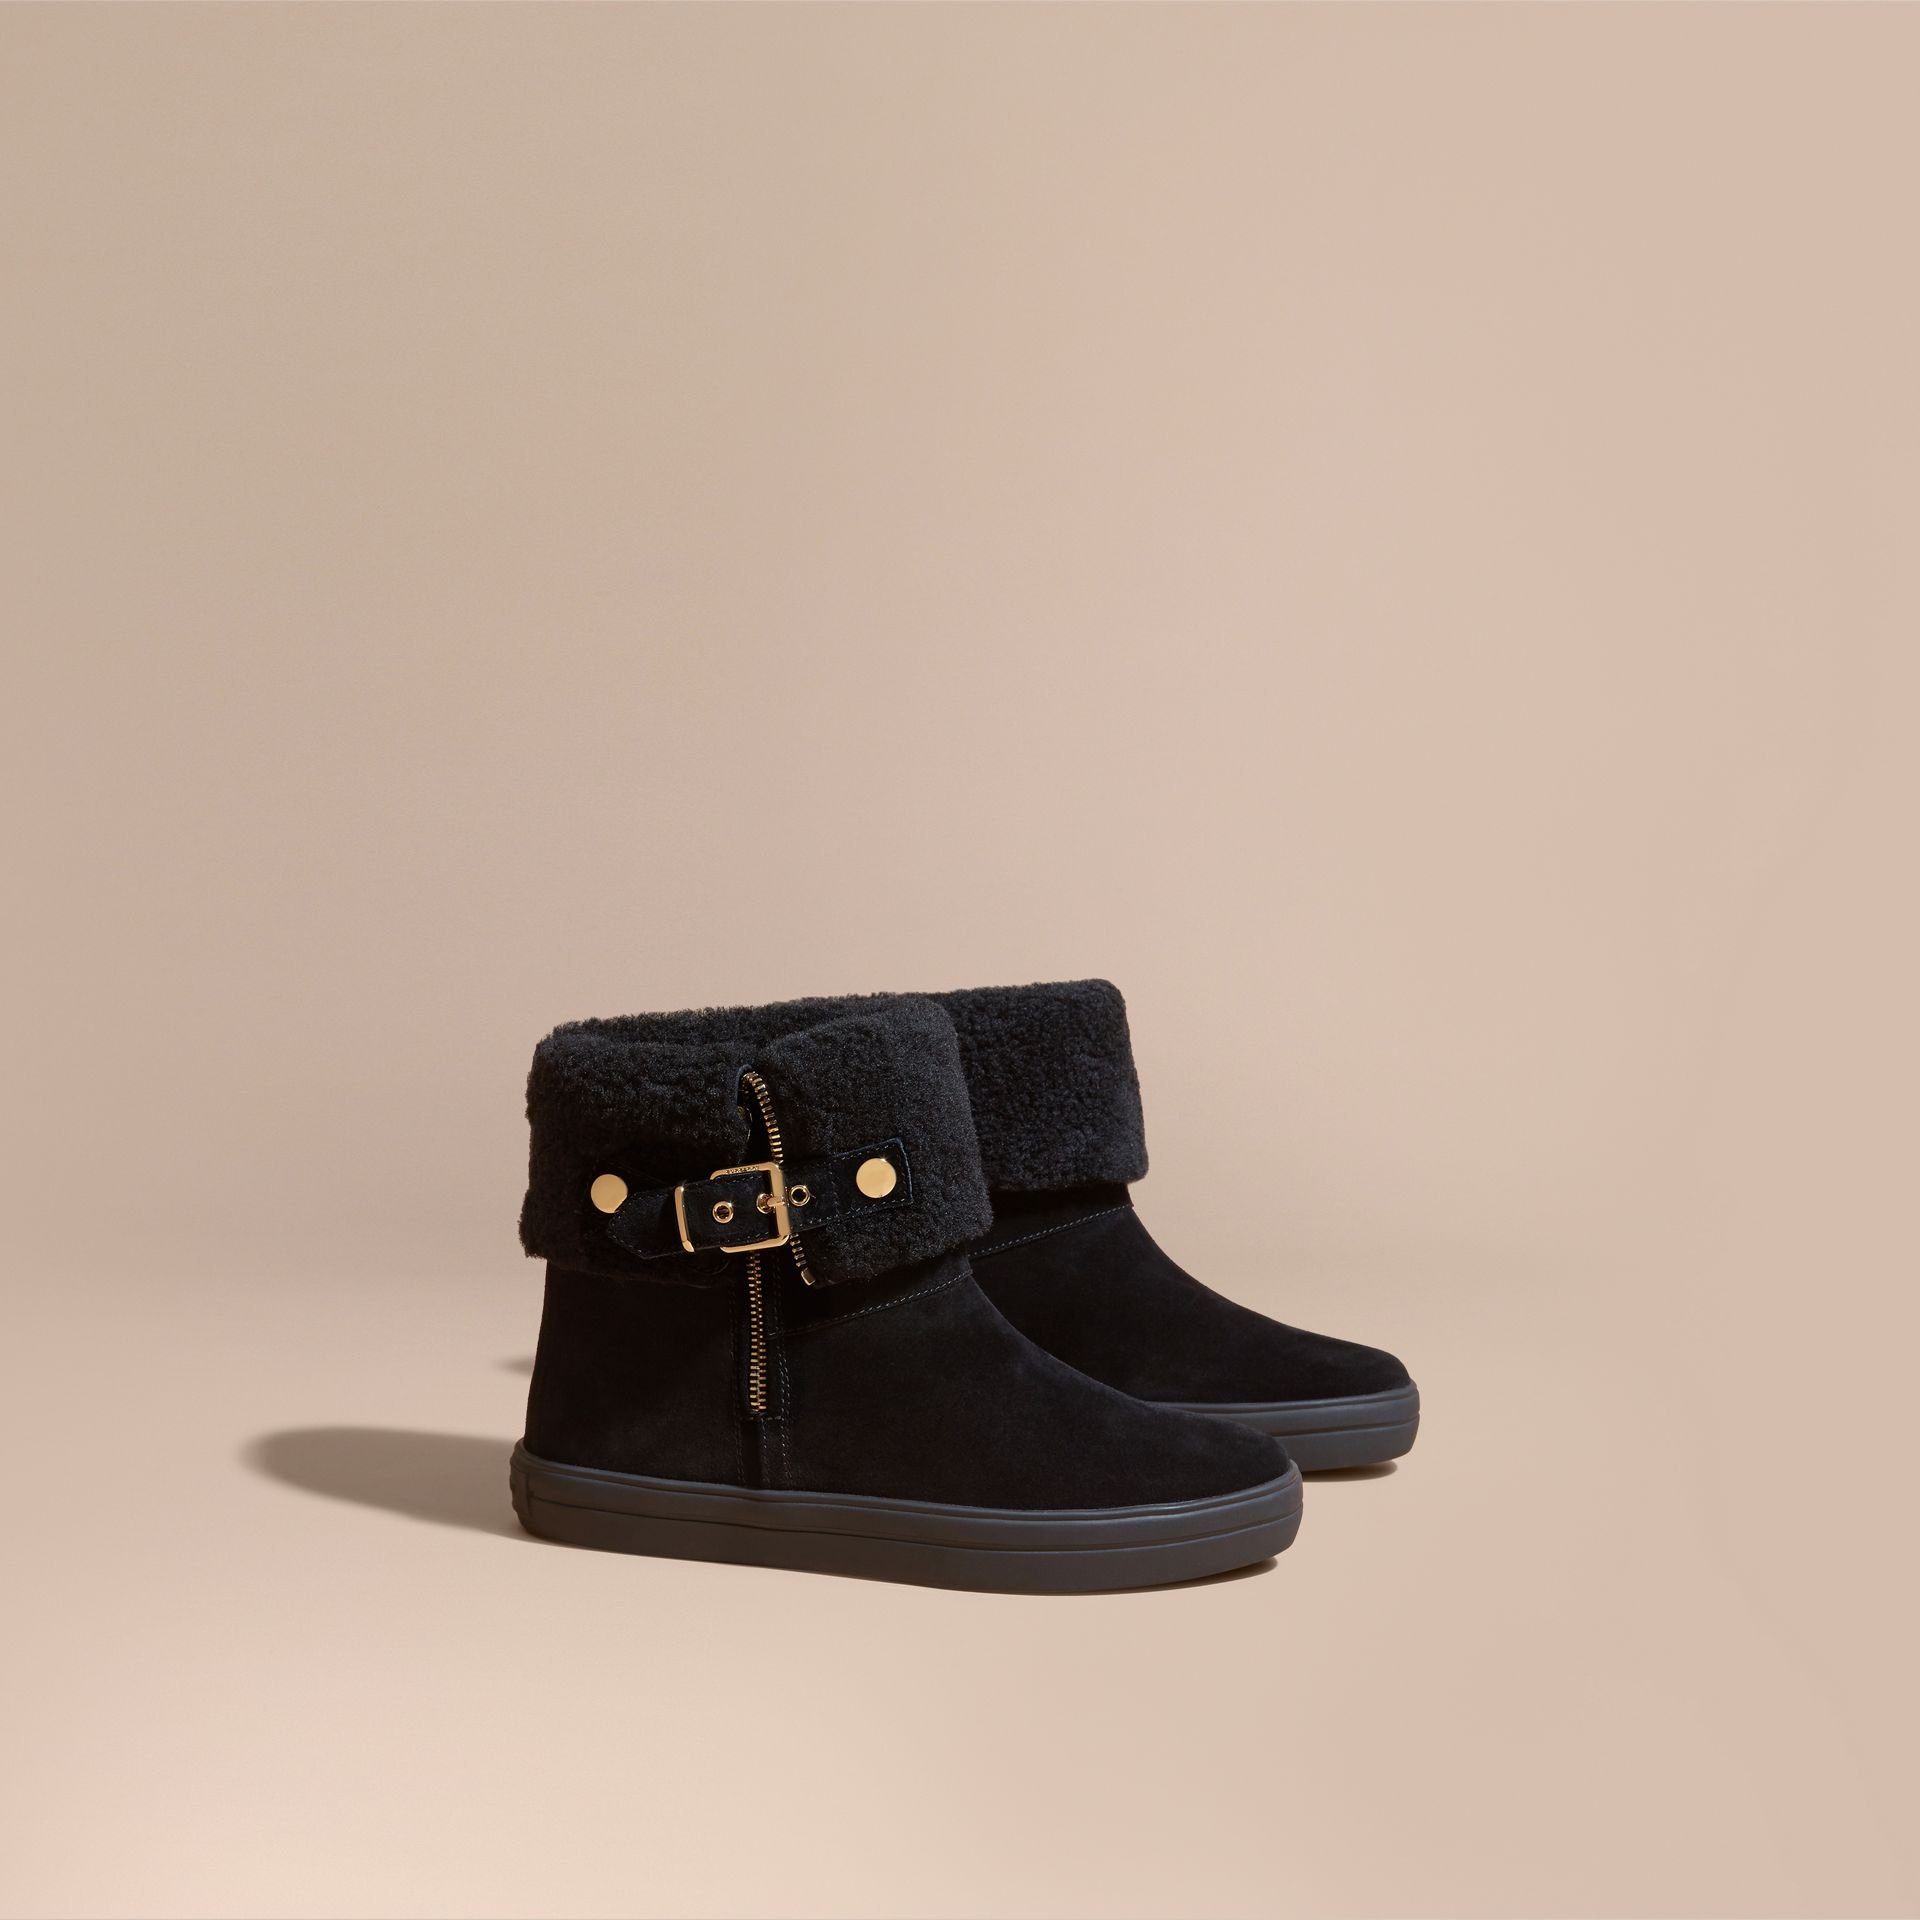 Shearling-lined Suede Ankle Boots - Women | Burberry - gallery image 1